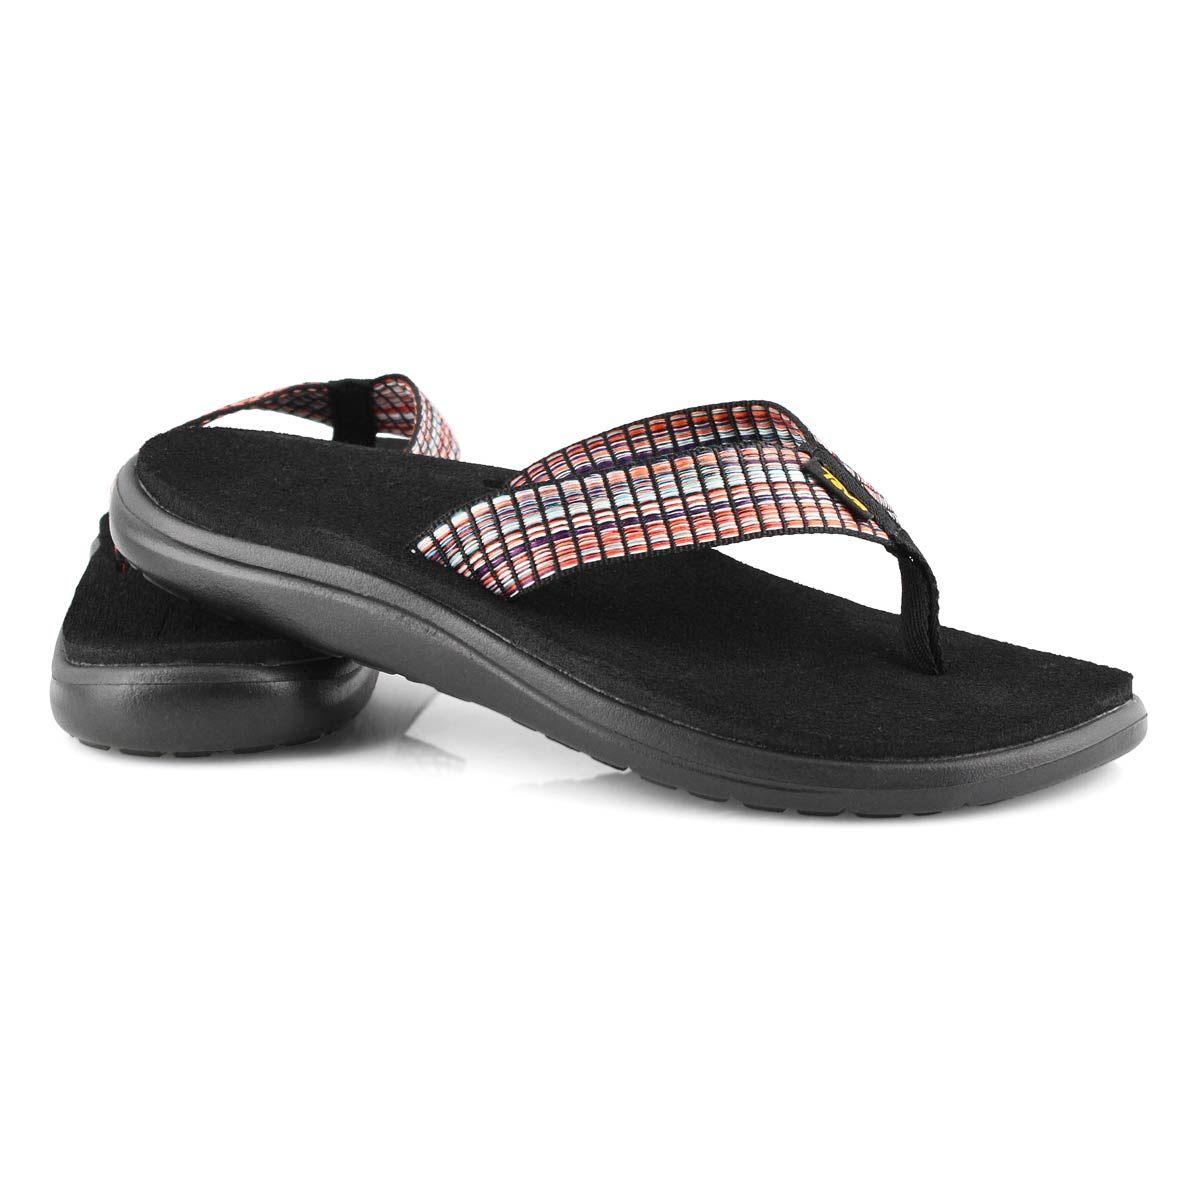 Women's VOYA FLIP multi/ black casual sandals